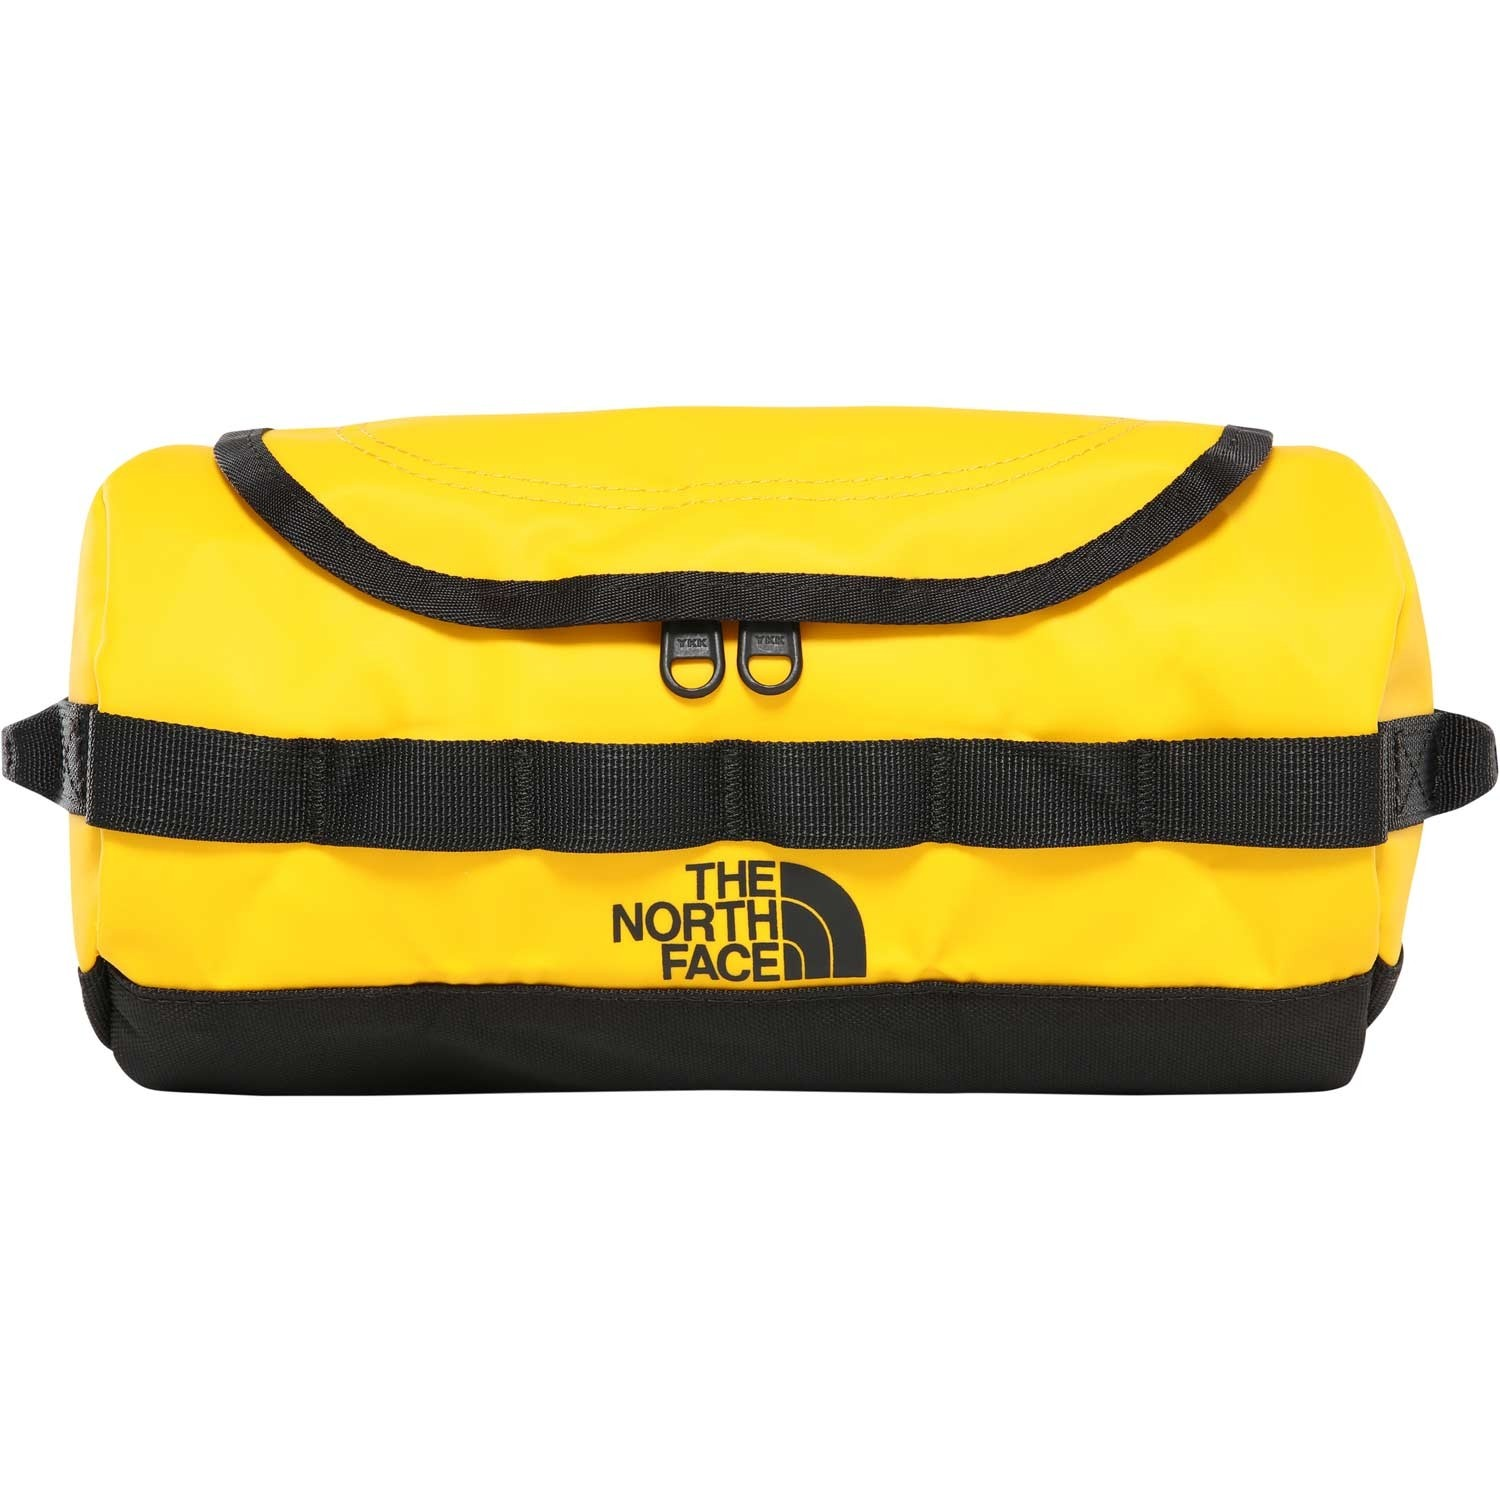 TNF Base Camp Travel Canister Small - Summit Gold/TNF Black